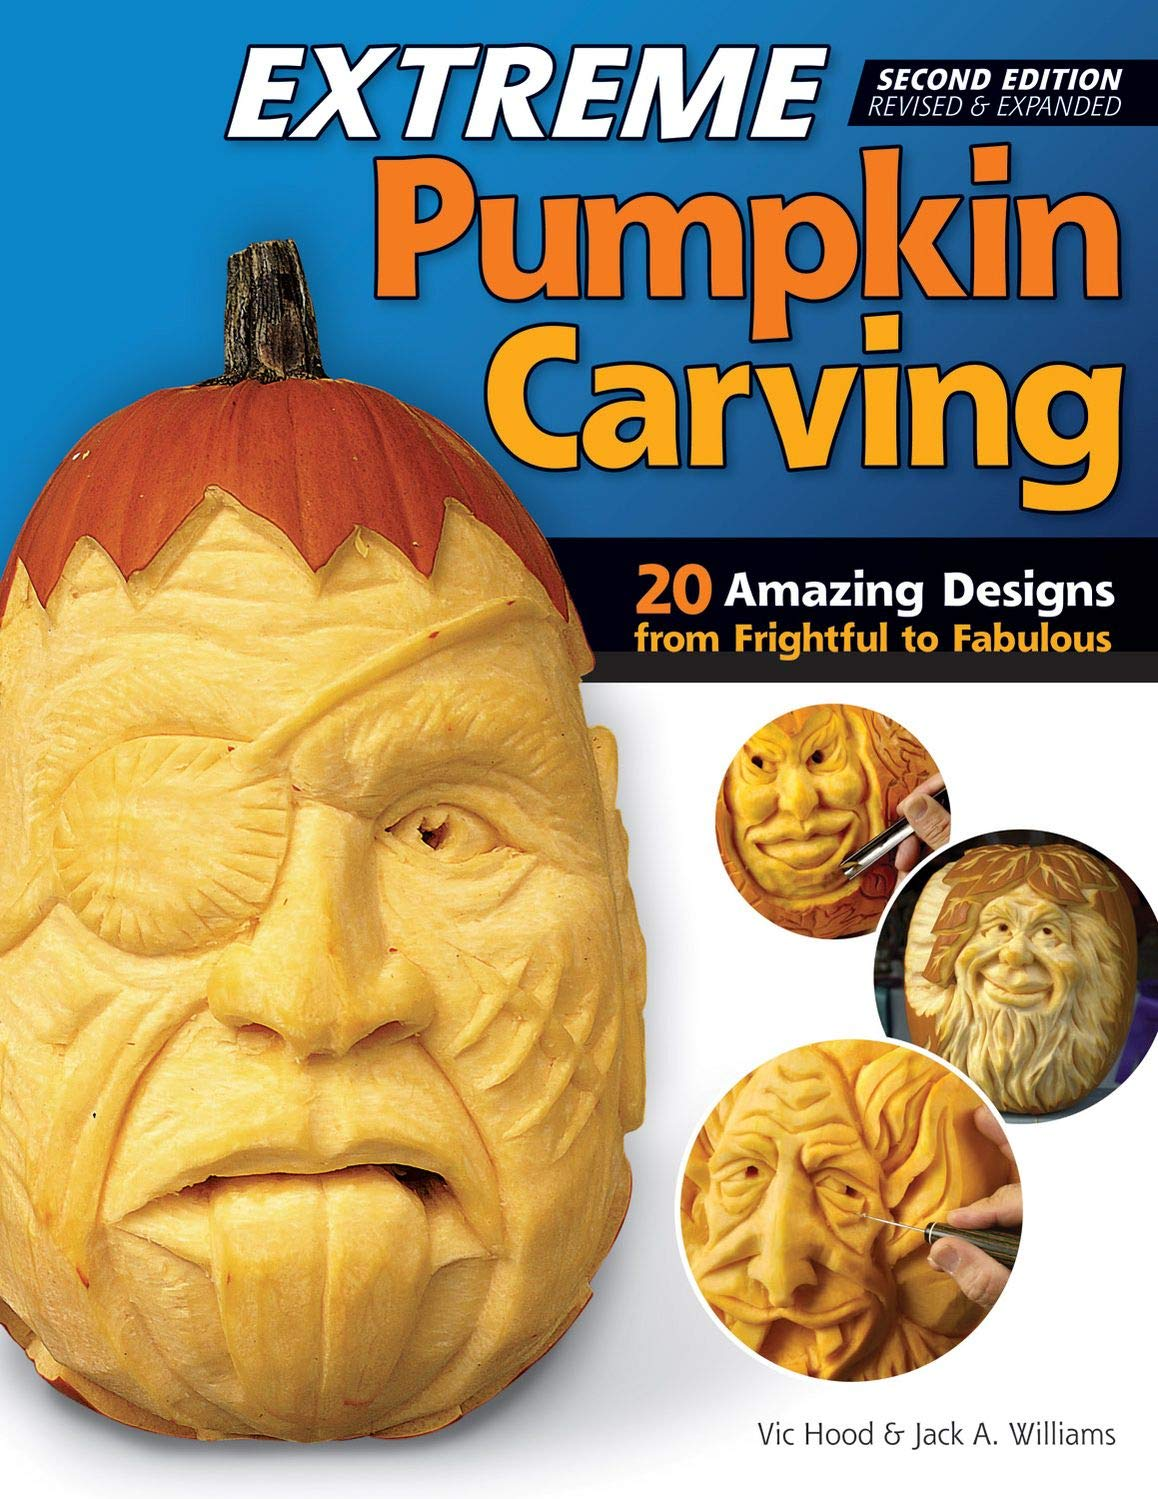 Extreme Pumpkin Carving Second Edition Revised And Expanded 20 Amazing Designs From Frightful To Fabulous Fox Chapel Publishing How To Use Relief Carving Techniques To Create Realistic Features Hood Vic Williams Jack 9781565238060